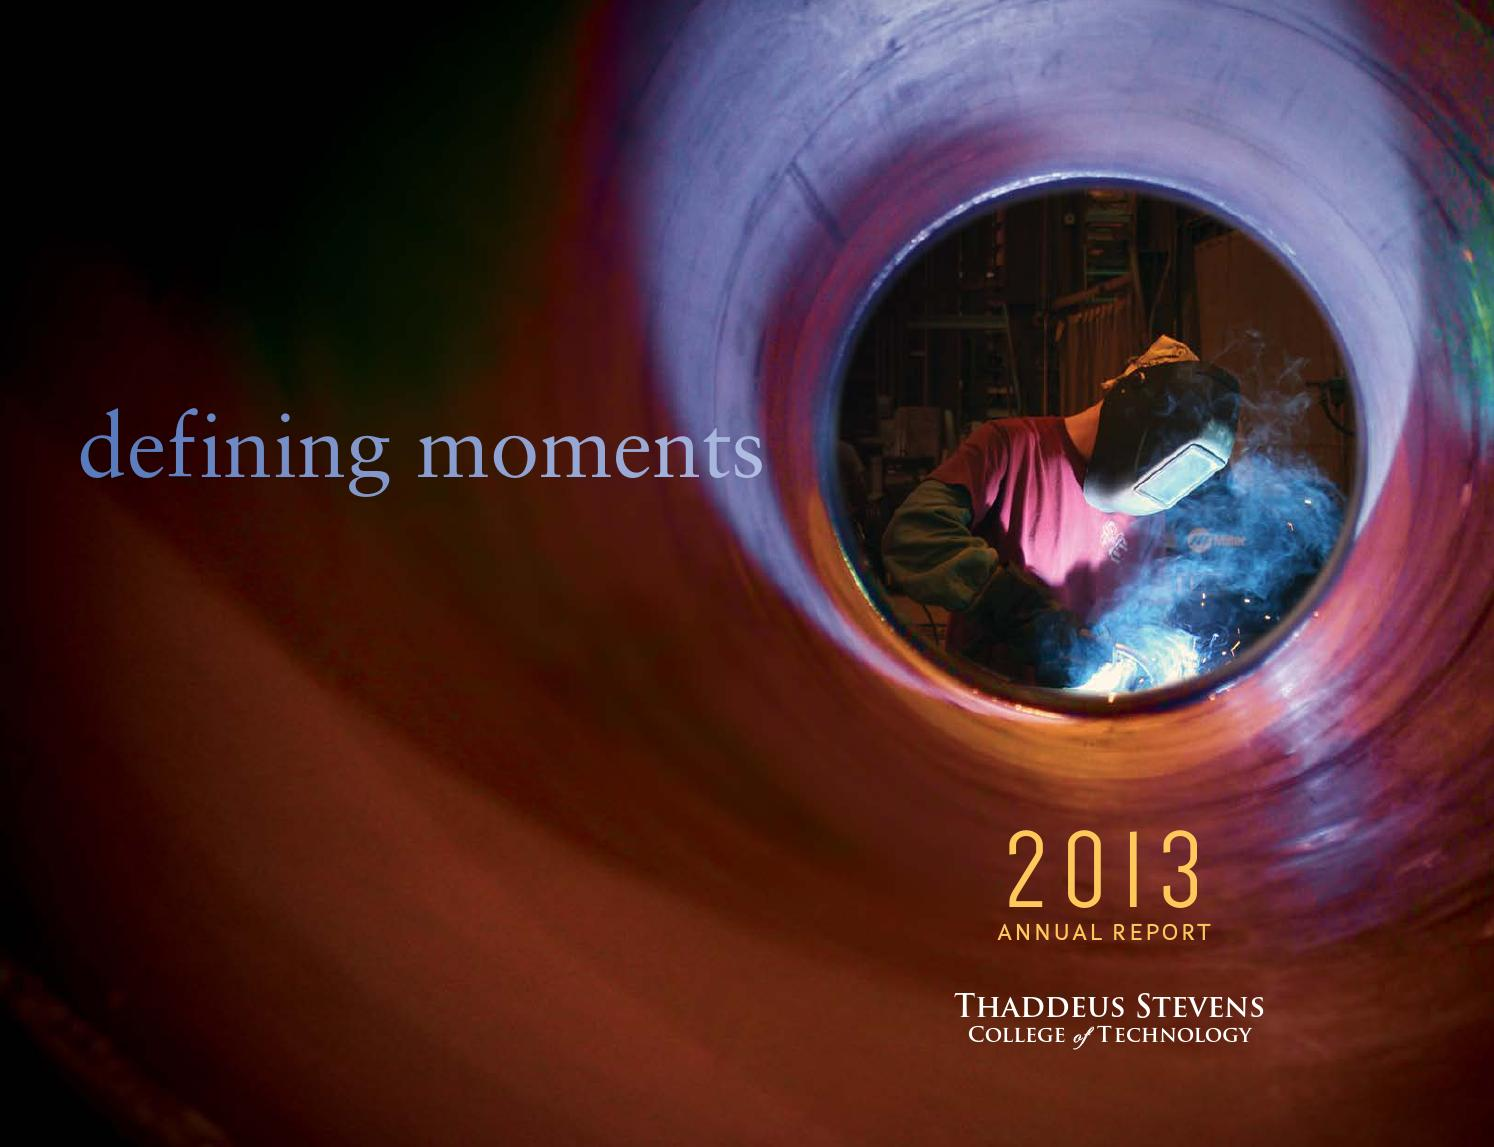 annual report by westmoreland county community college issuu defining moments